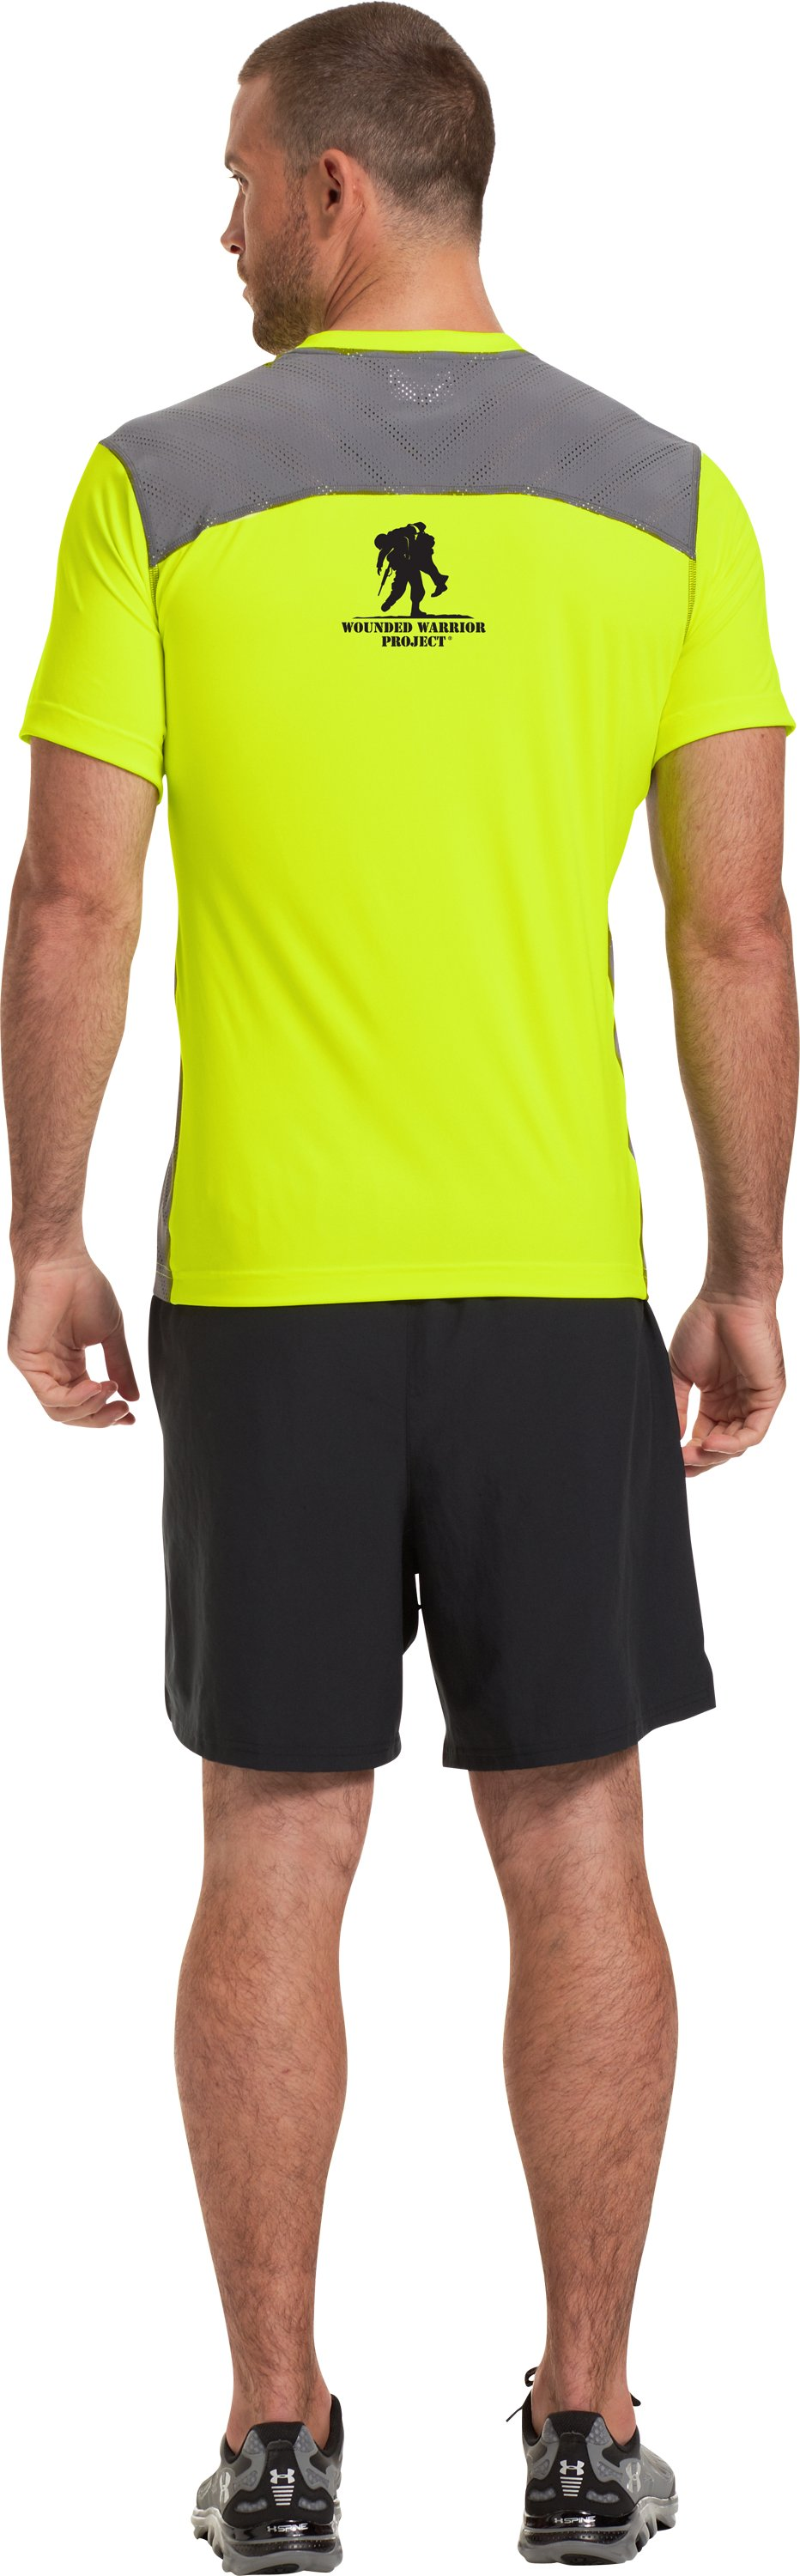 Men's WWP ArmourVent™ Short Sleeve T-Shirt, High-Vis Yellow, Back